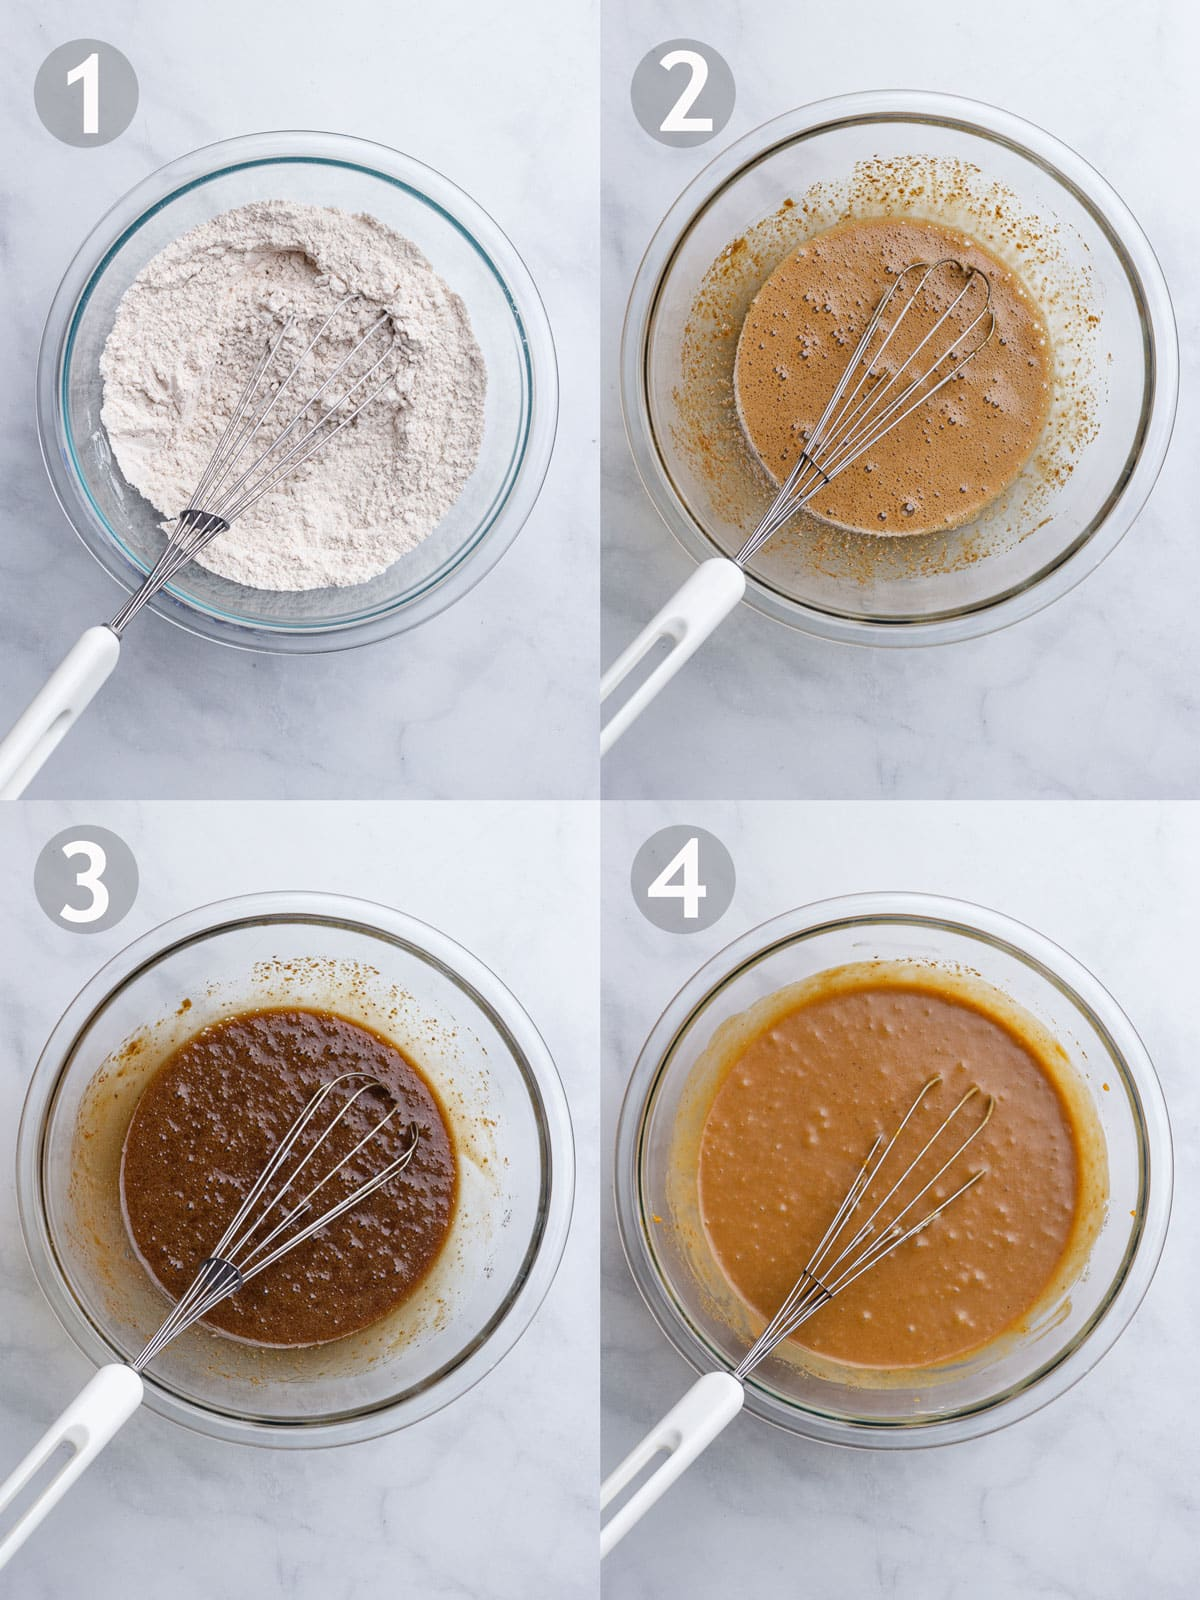 Steps to make muffins including mixing dry ingredients, mixing wet ingredients and combining the wet and dry ingredients.